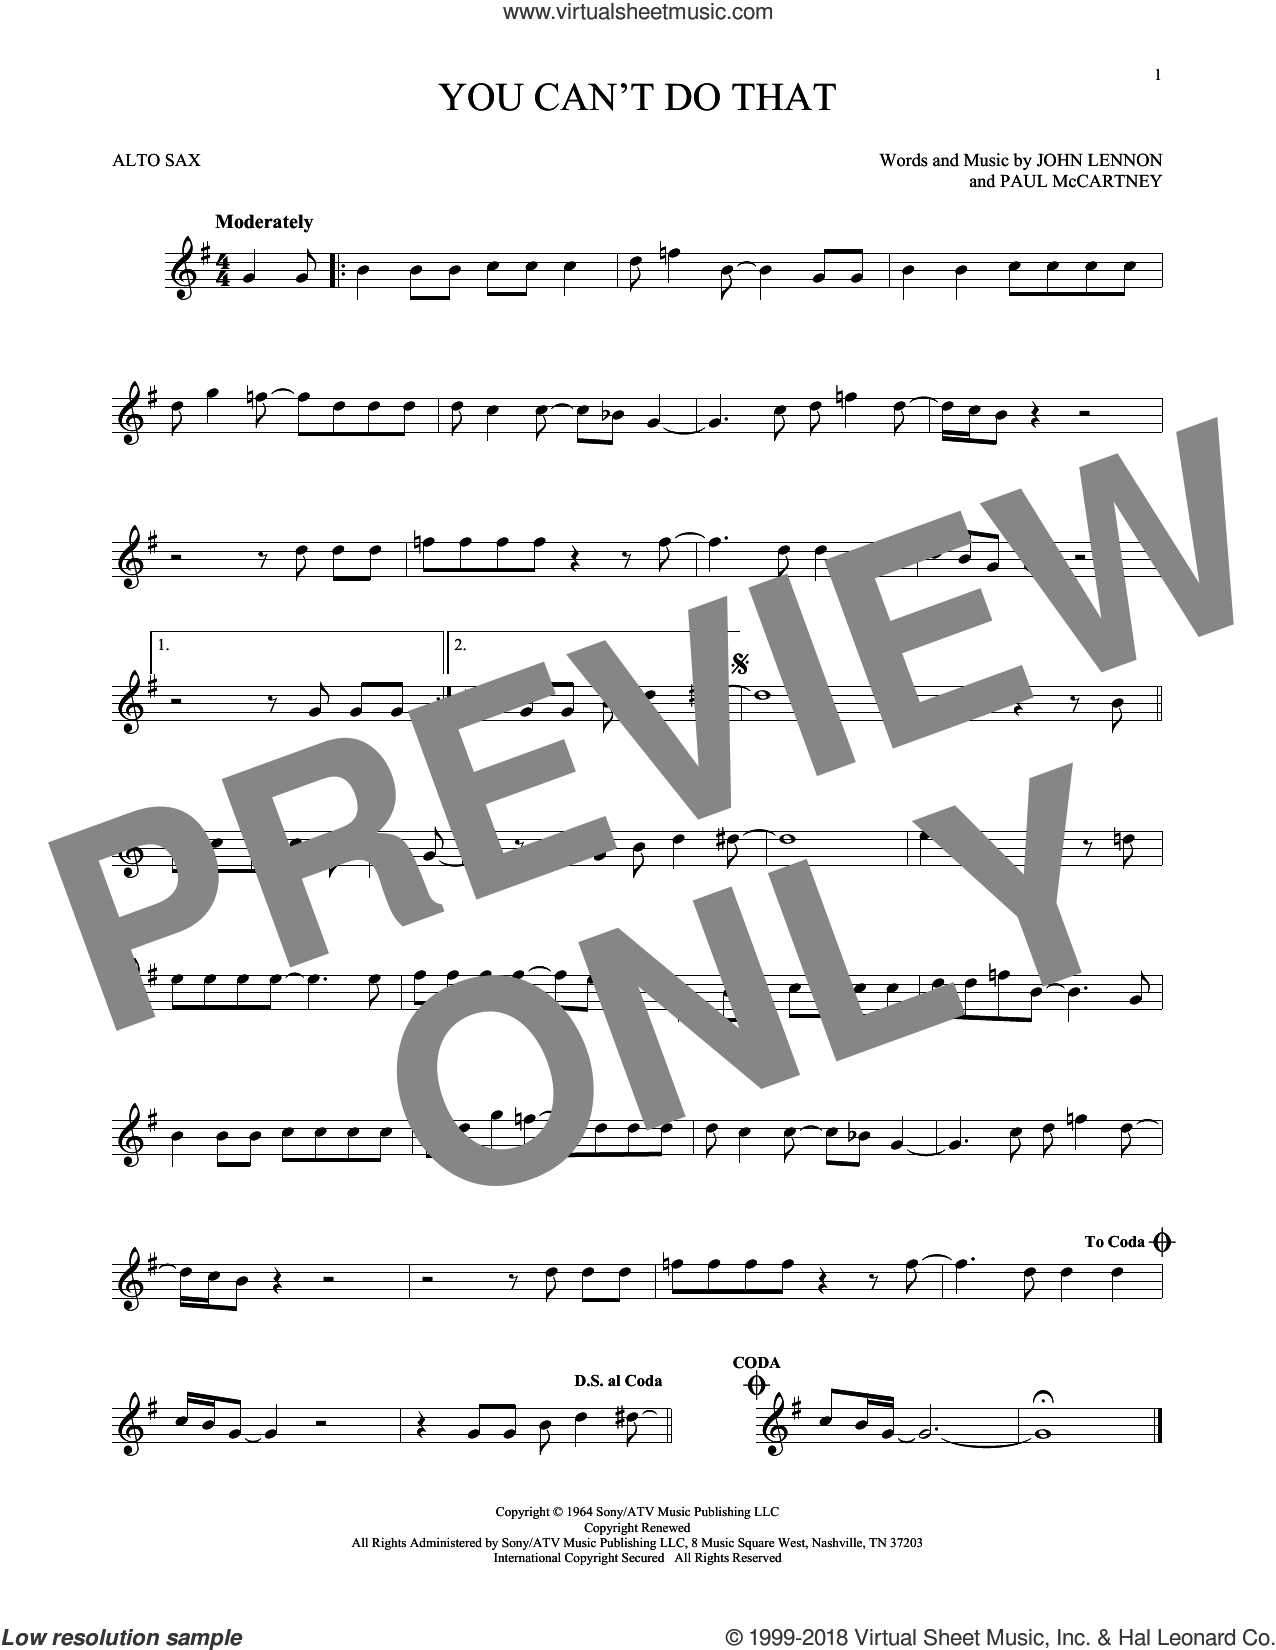 You Can't Do That sheet music for alto saxophone solo by The Beatles, John Lennon and Paul McCartney, intermediate. Score Image Preview.